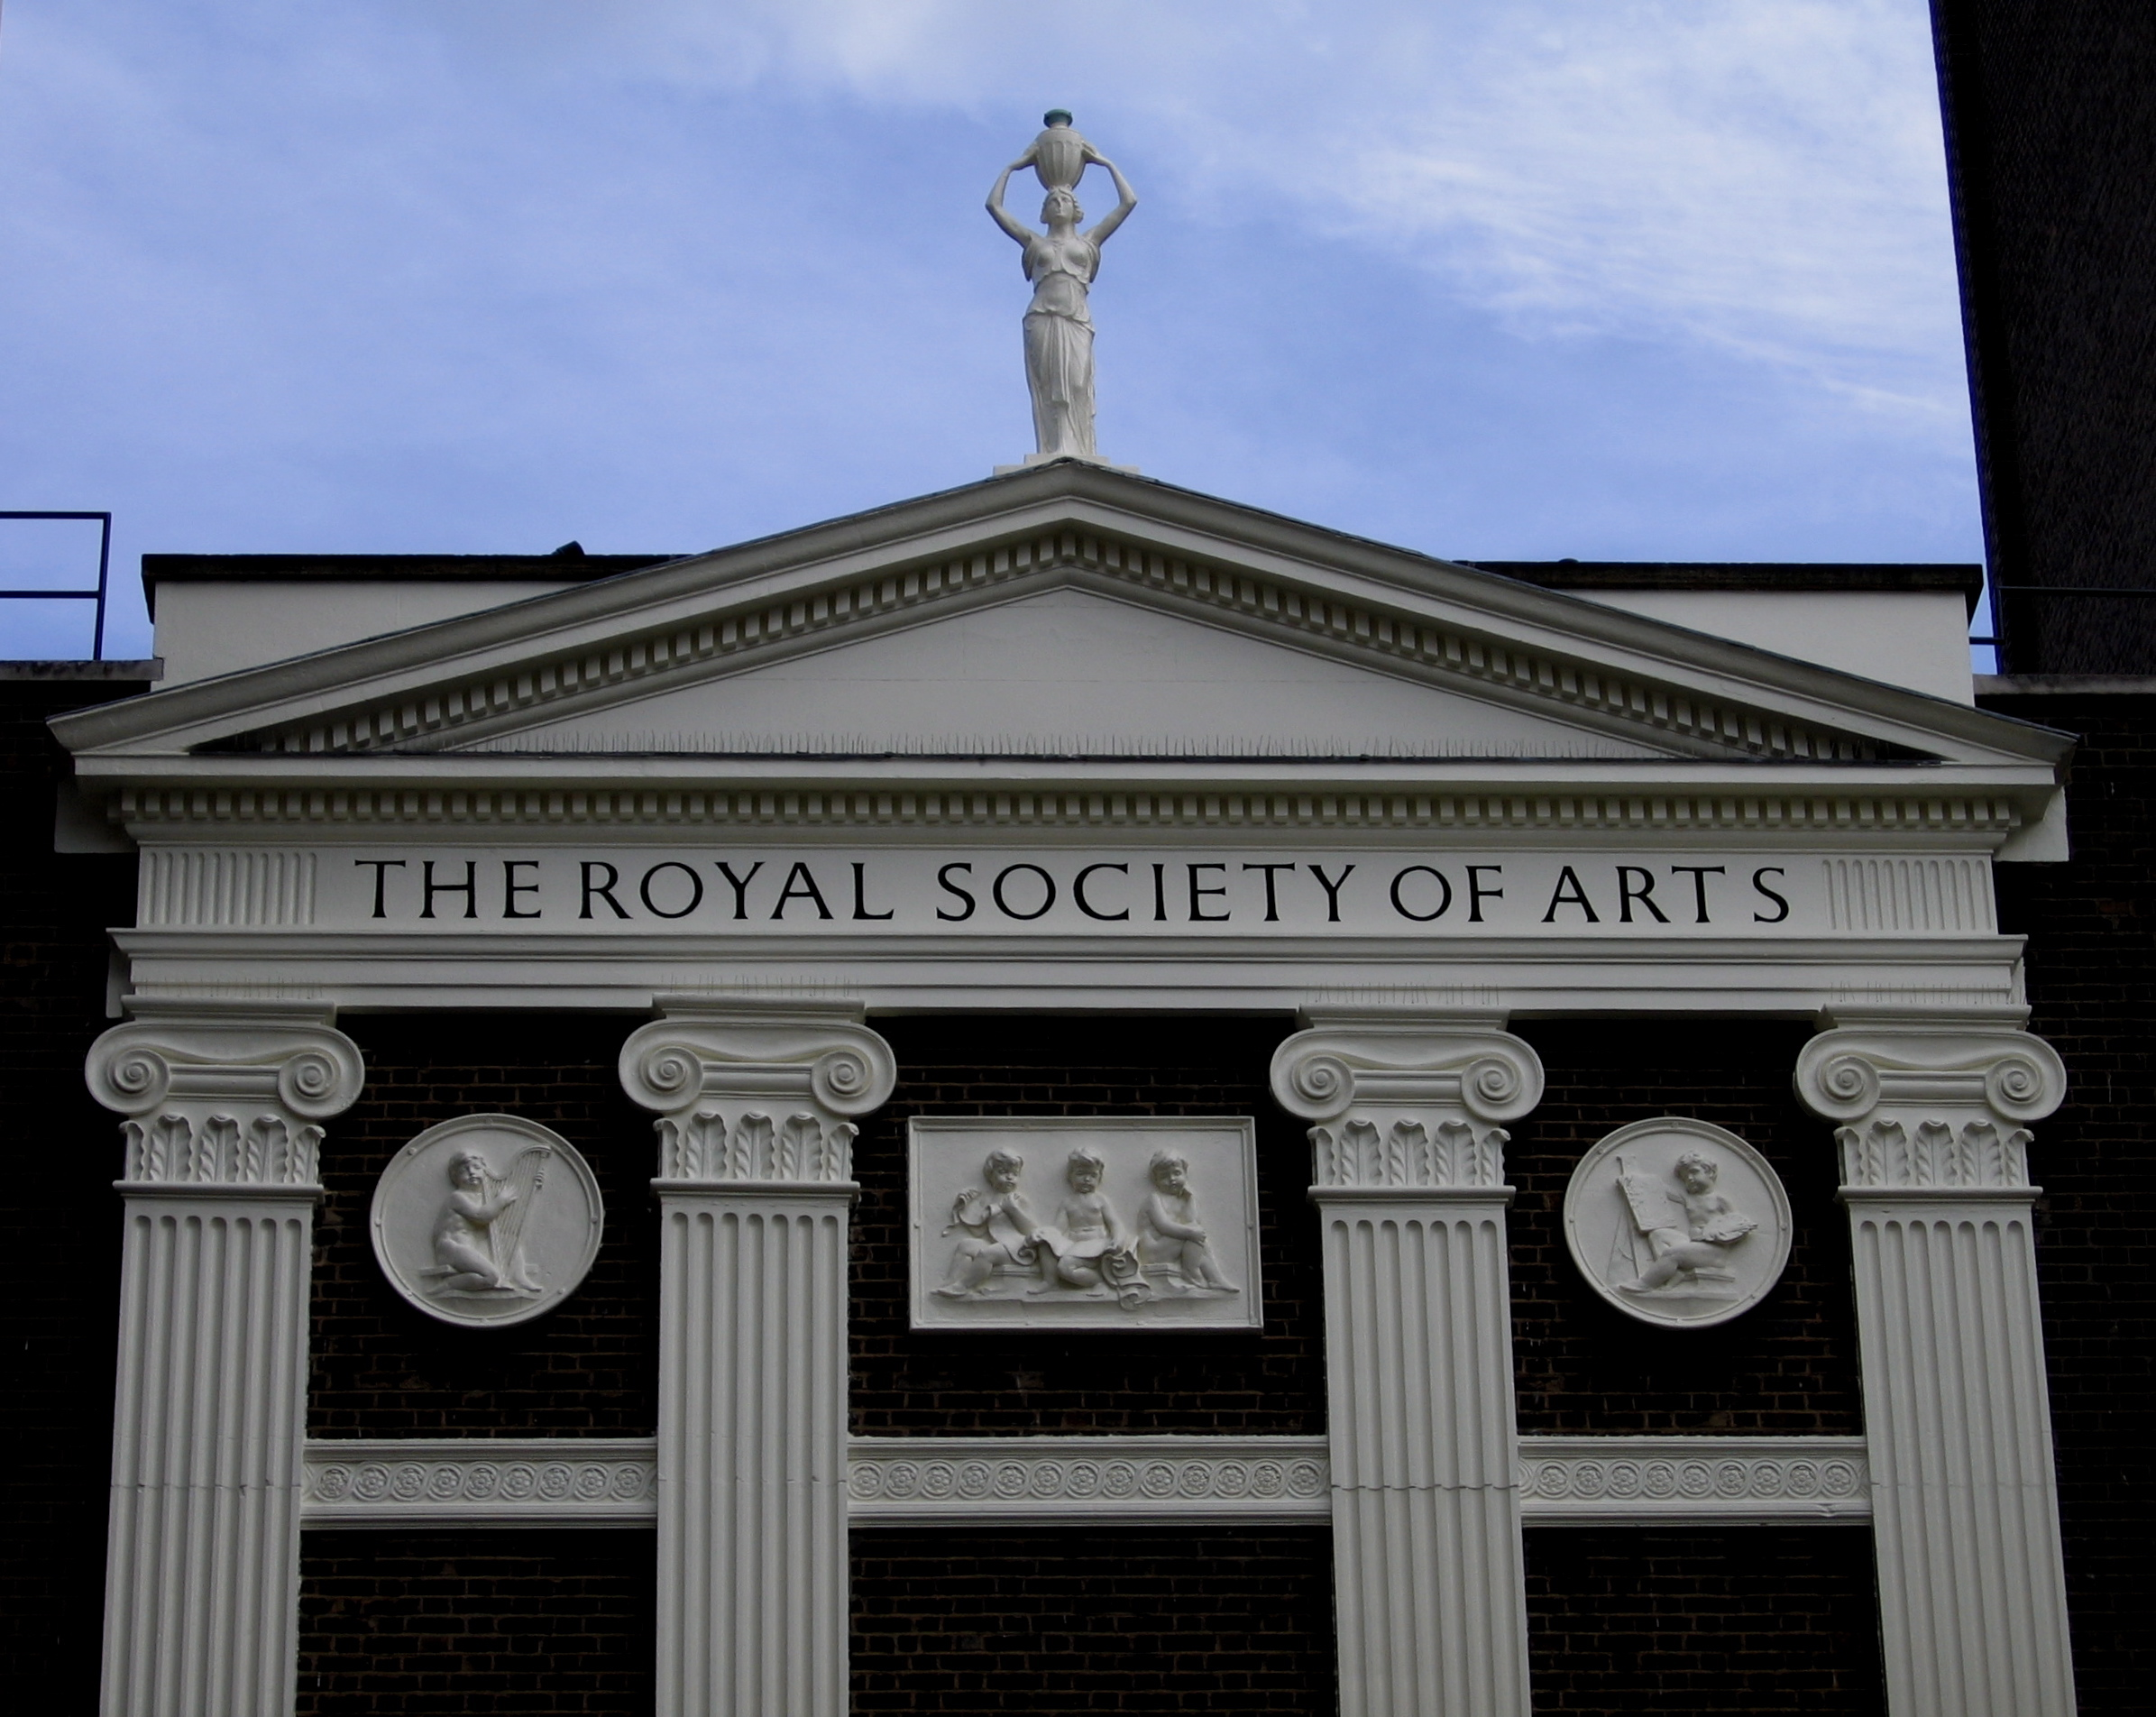 http://upload.wikimedia.org/wikipedia/commons/3/3c/London_-_The_Royal_Society_of_Arts.jpg